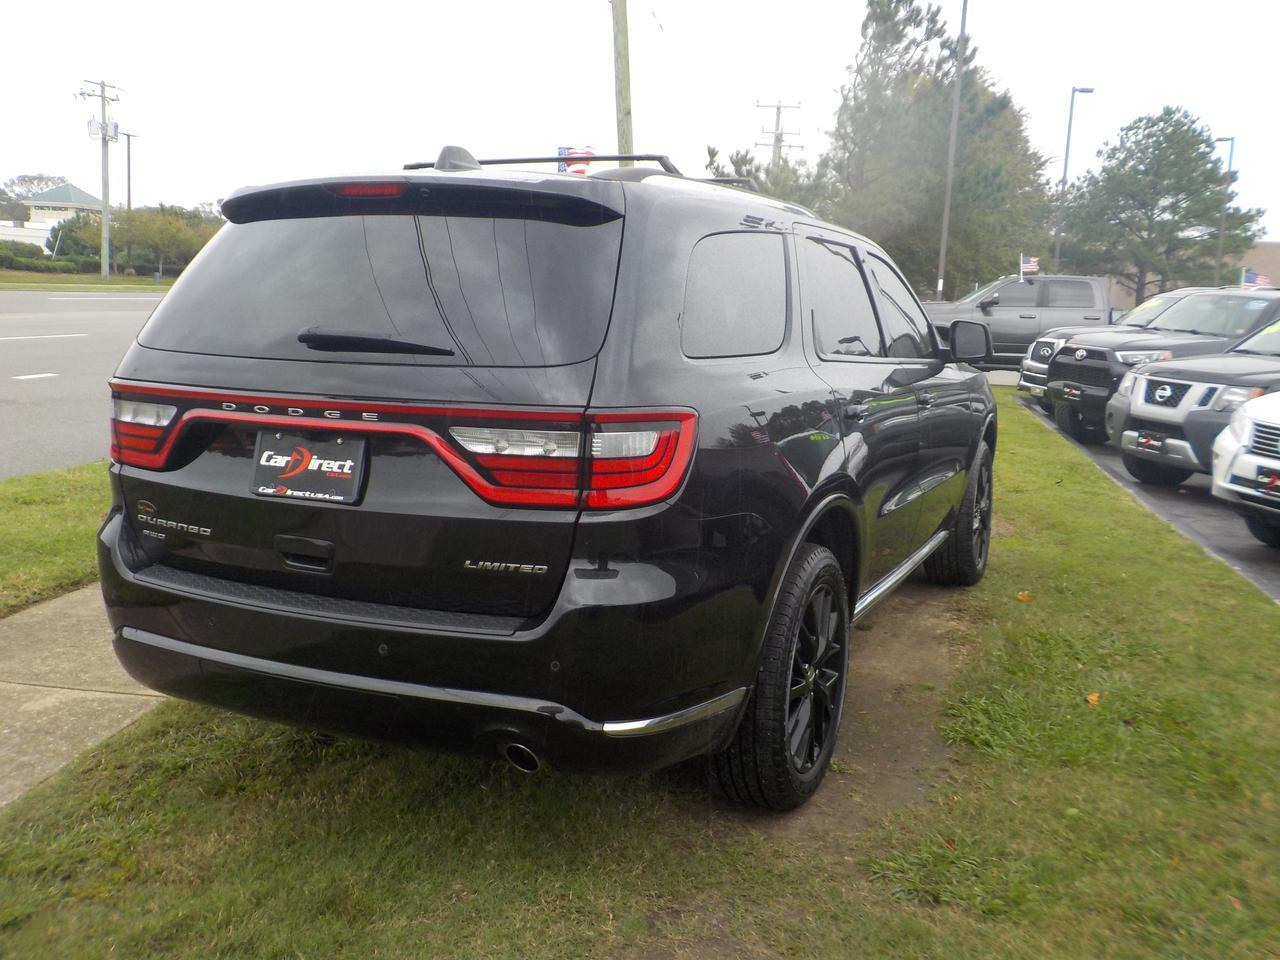 2016 DODGE DURANGO LIMITED AWD, LEATHER, HEATED SEATS, REMOTE START, SUNROOF, BACK UP CAM, NAVIGATION, ONLY 53K MILES! Virginia Beach VA